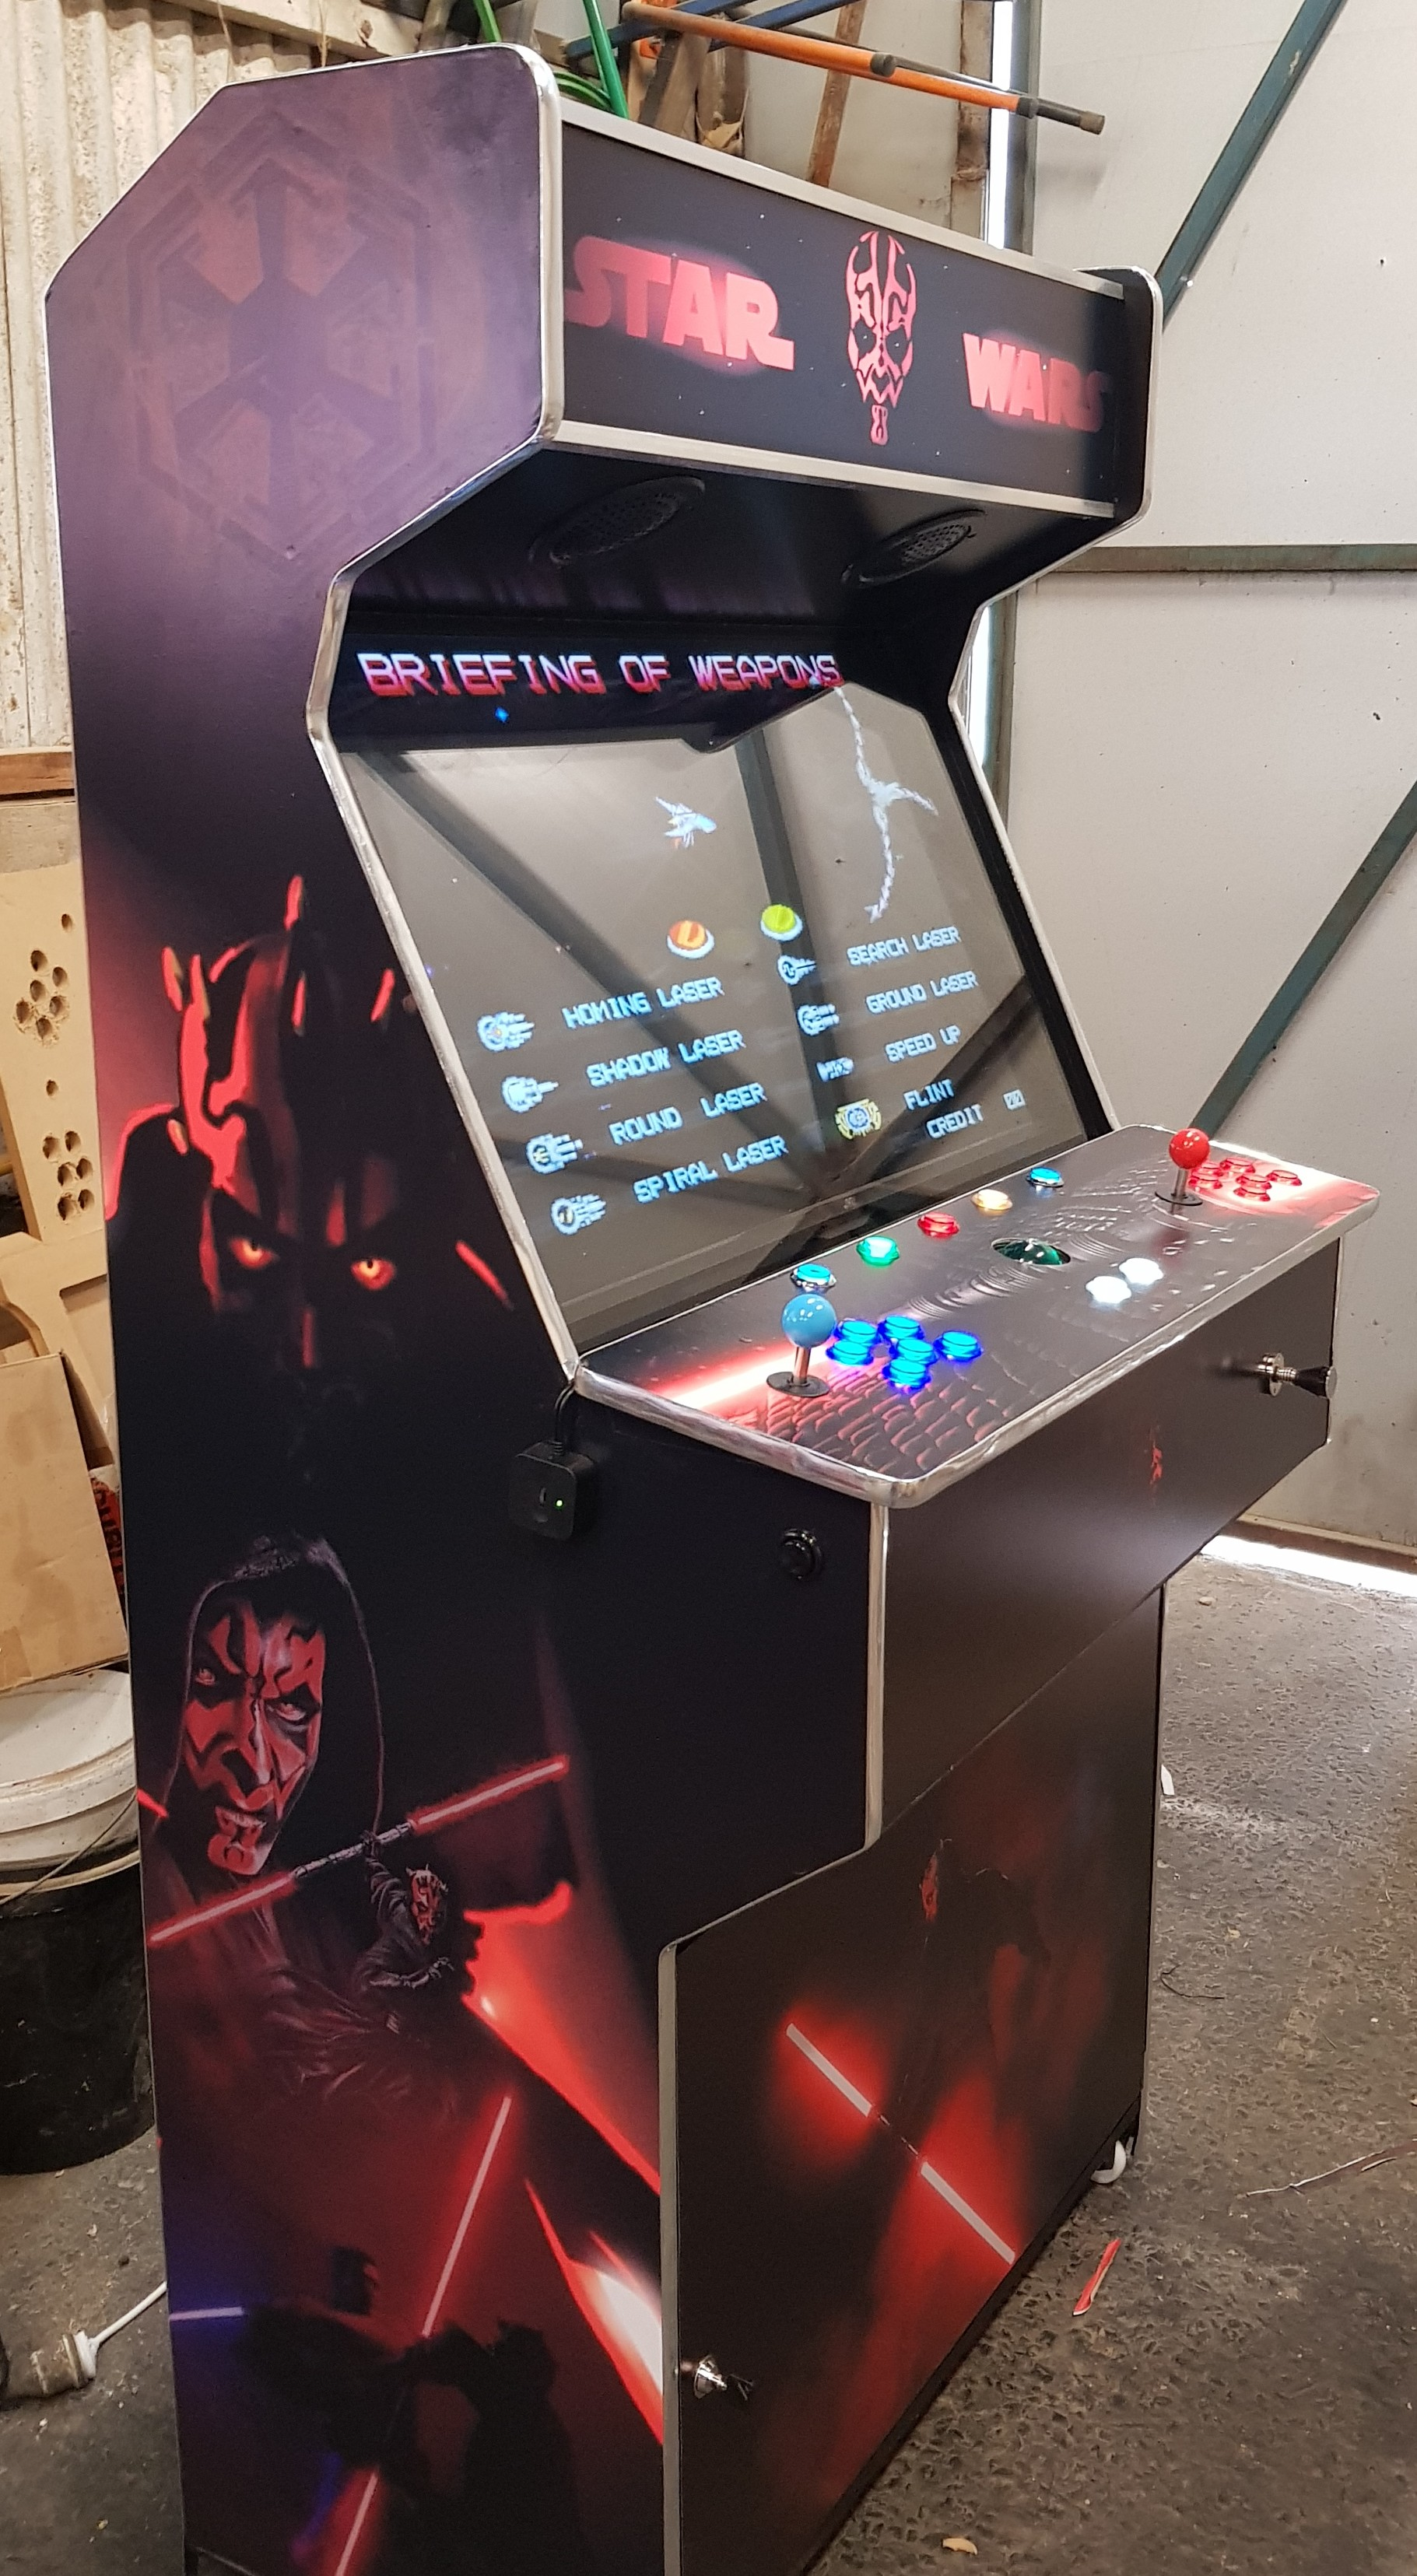 Star Wars Sith Lord Arcade